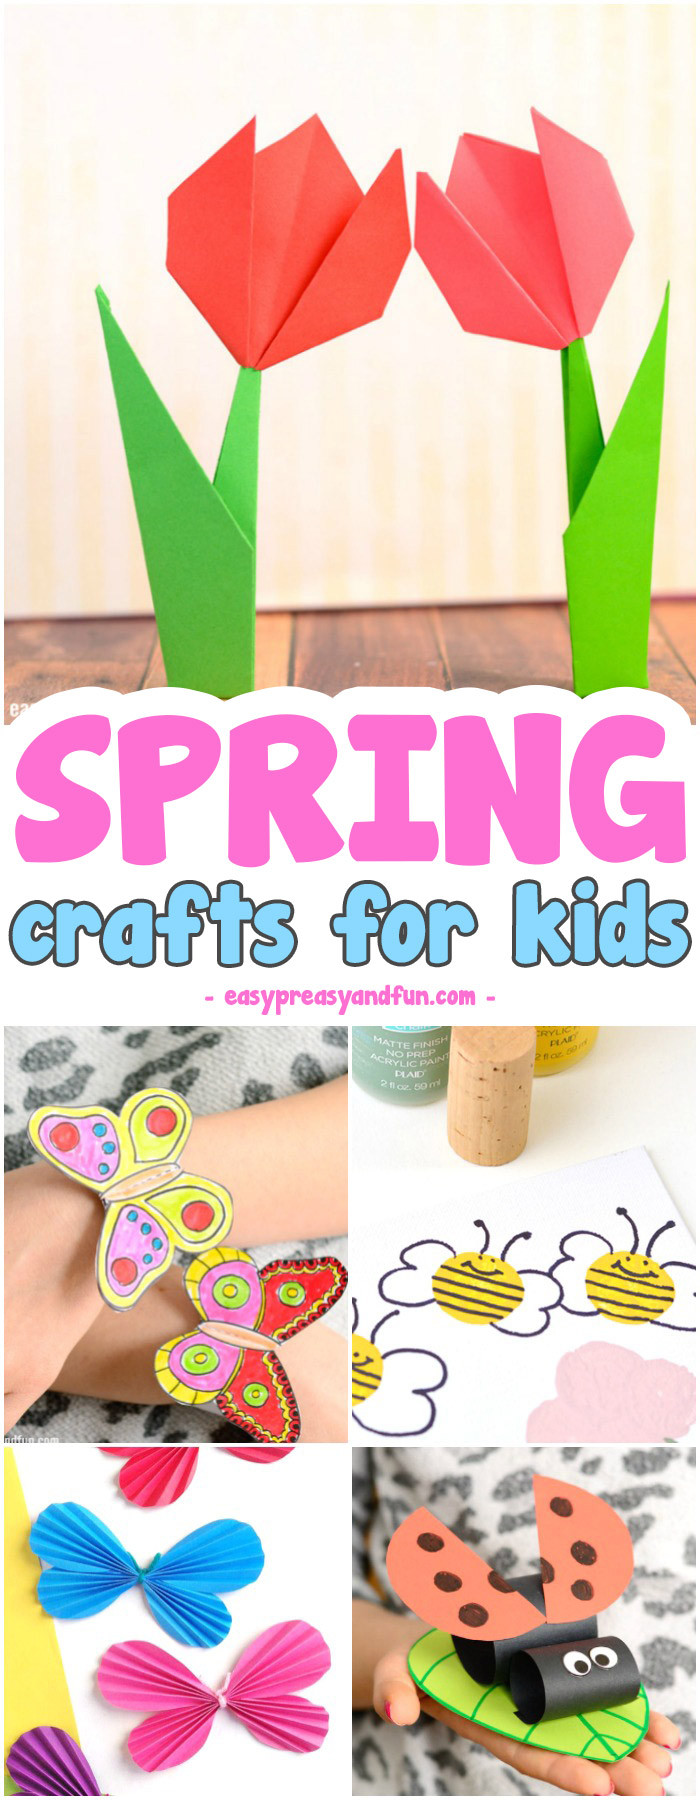 Best ideas about Fun Craft Ideas For Kids . Save or Pin Spring Crafts for Kids Art and Craft Project Ideas for Now.